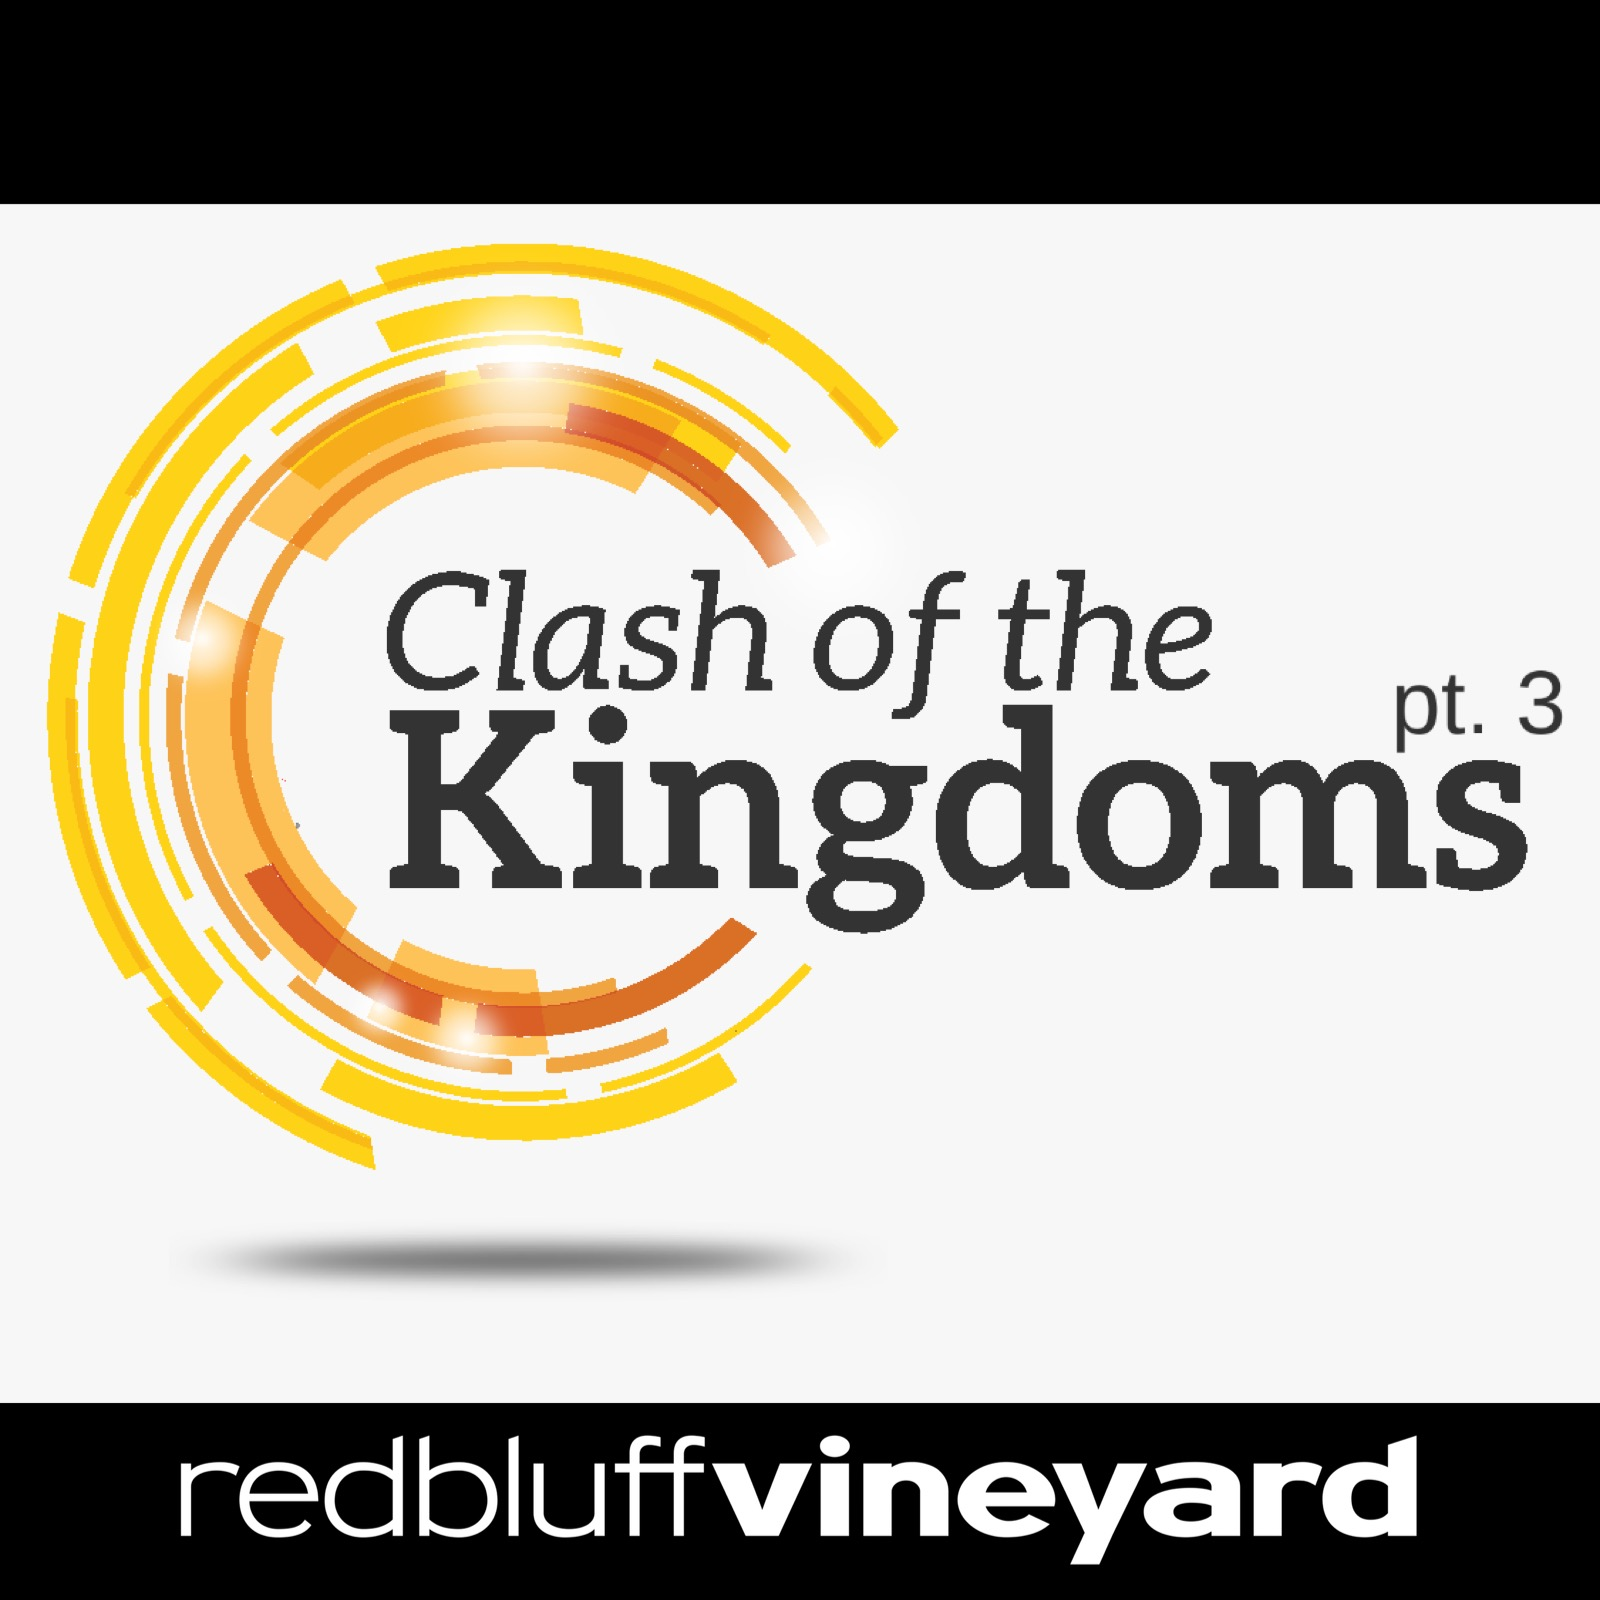 Clash of the Kingdoms: 5 ways the Church Continues to Defeat the Kingdom of Darkness